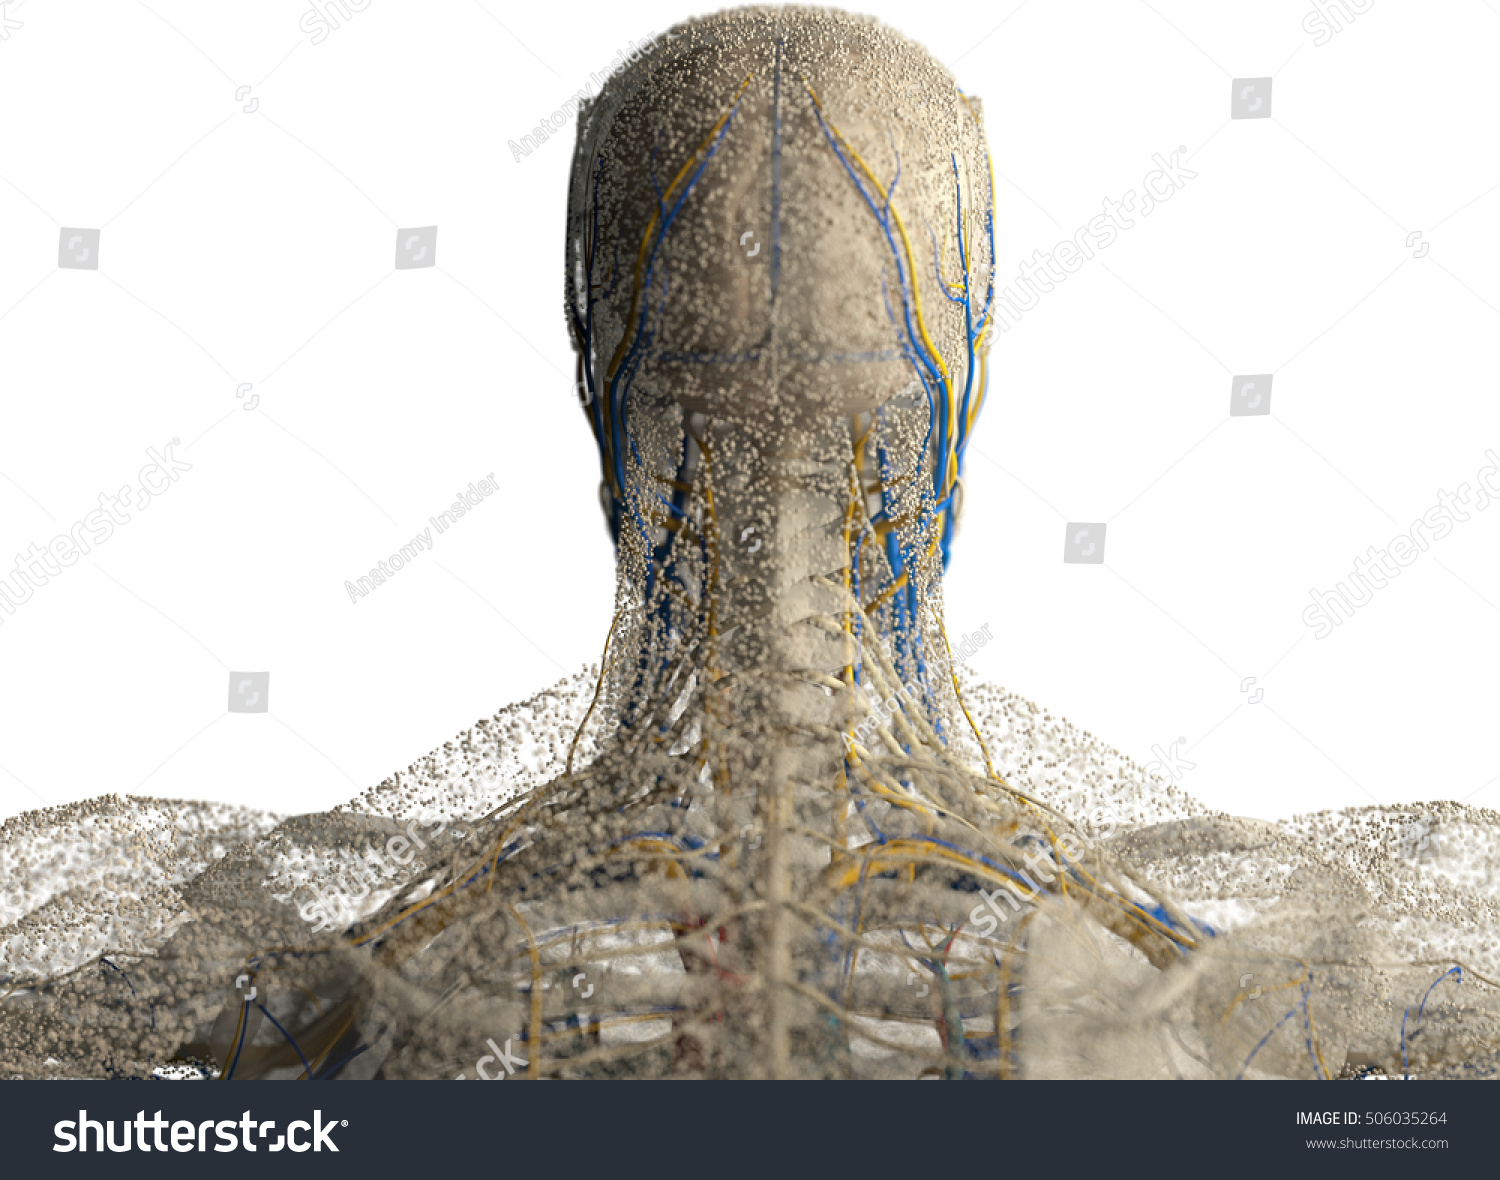 hight resolution of human anatomy head neck and shoulders covered in network of dots bio tech